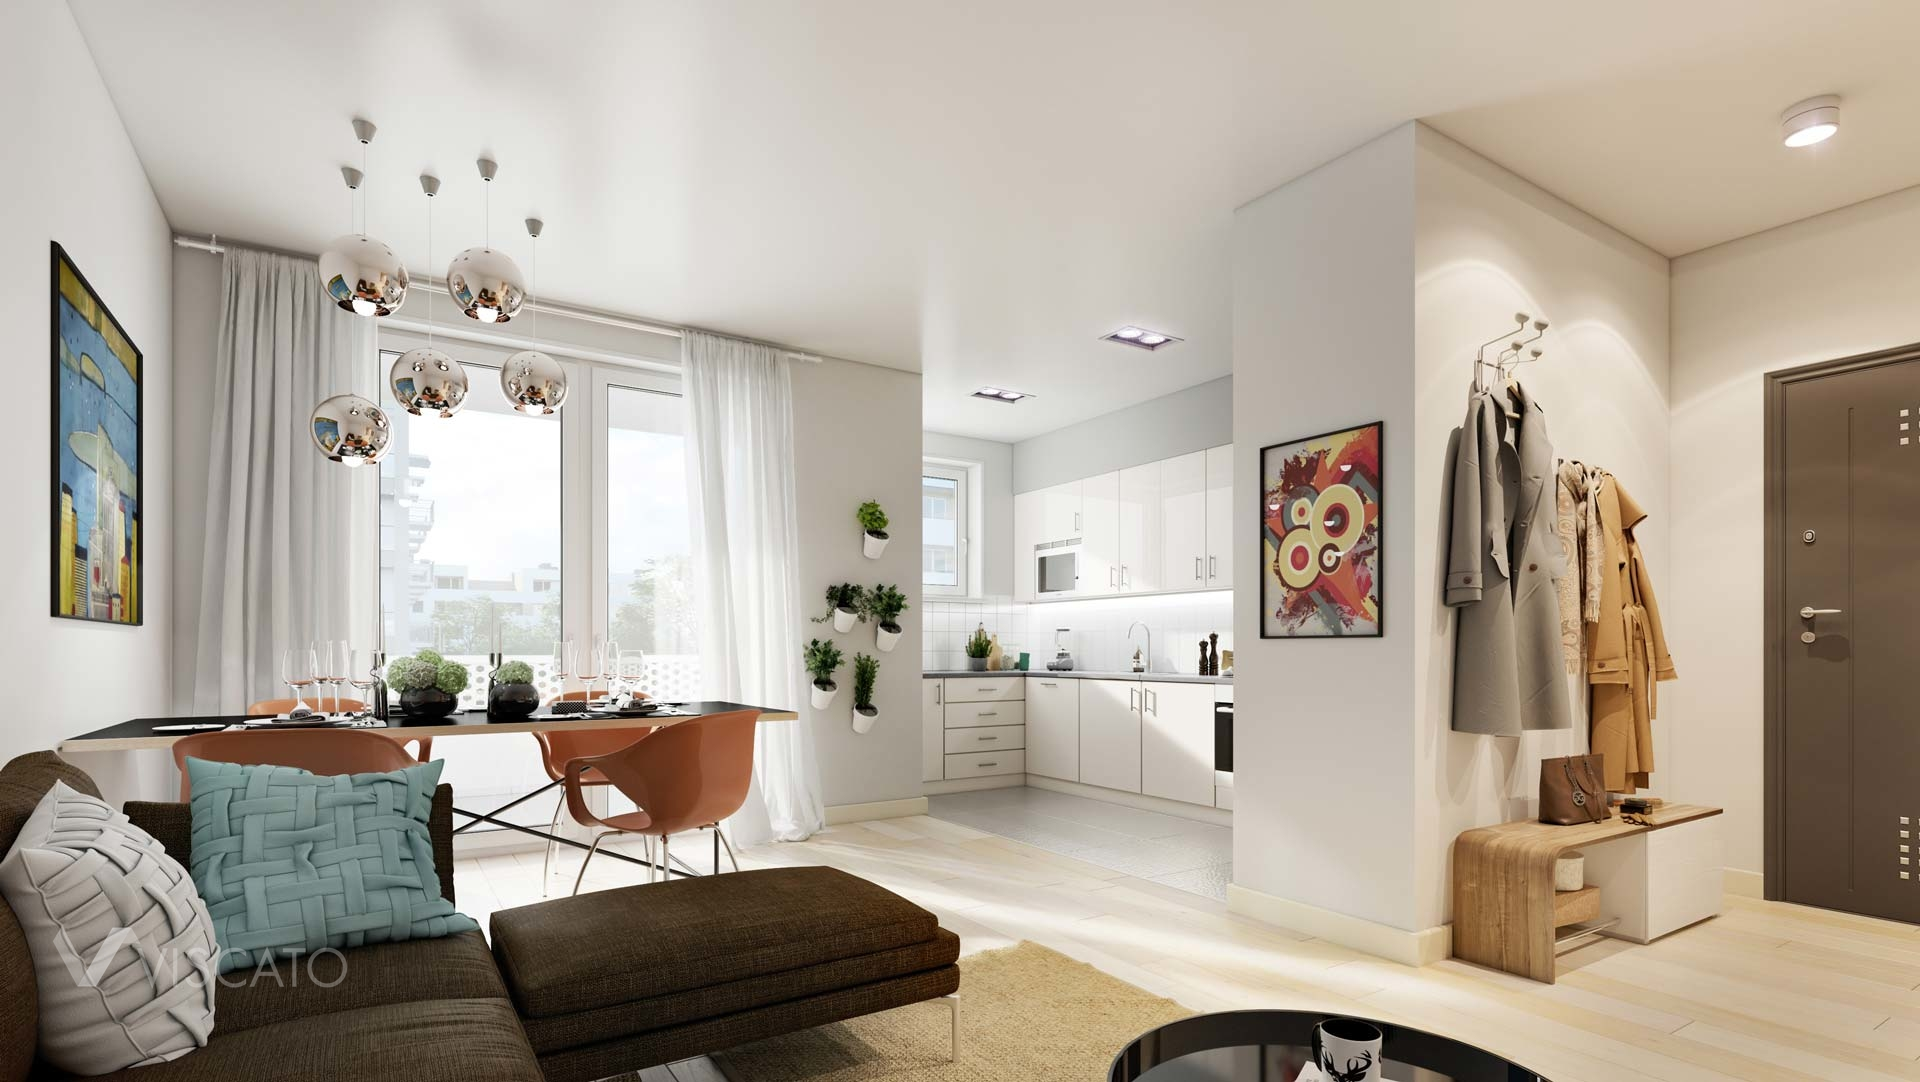 3D rendering of a living room with kitchenette Viscato